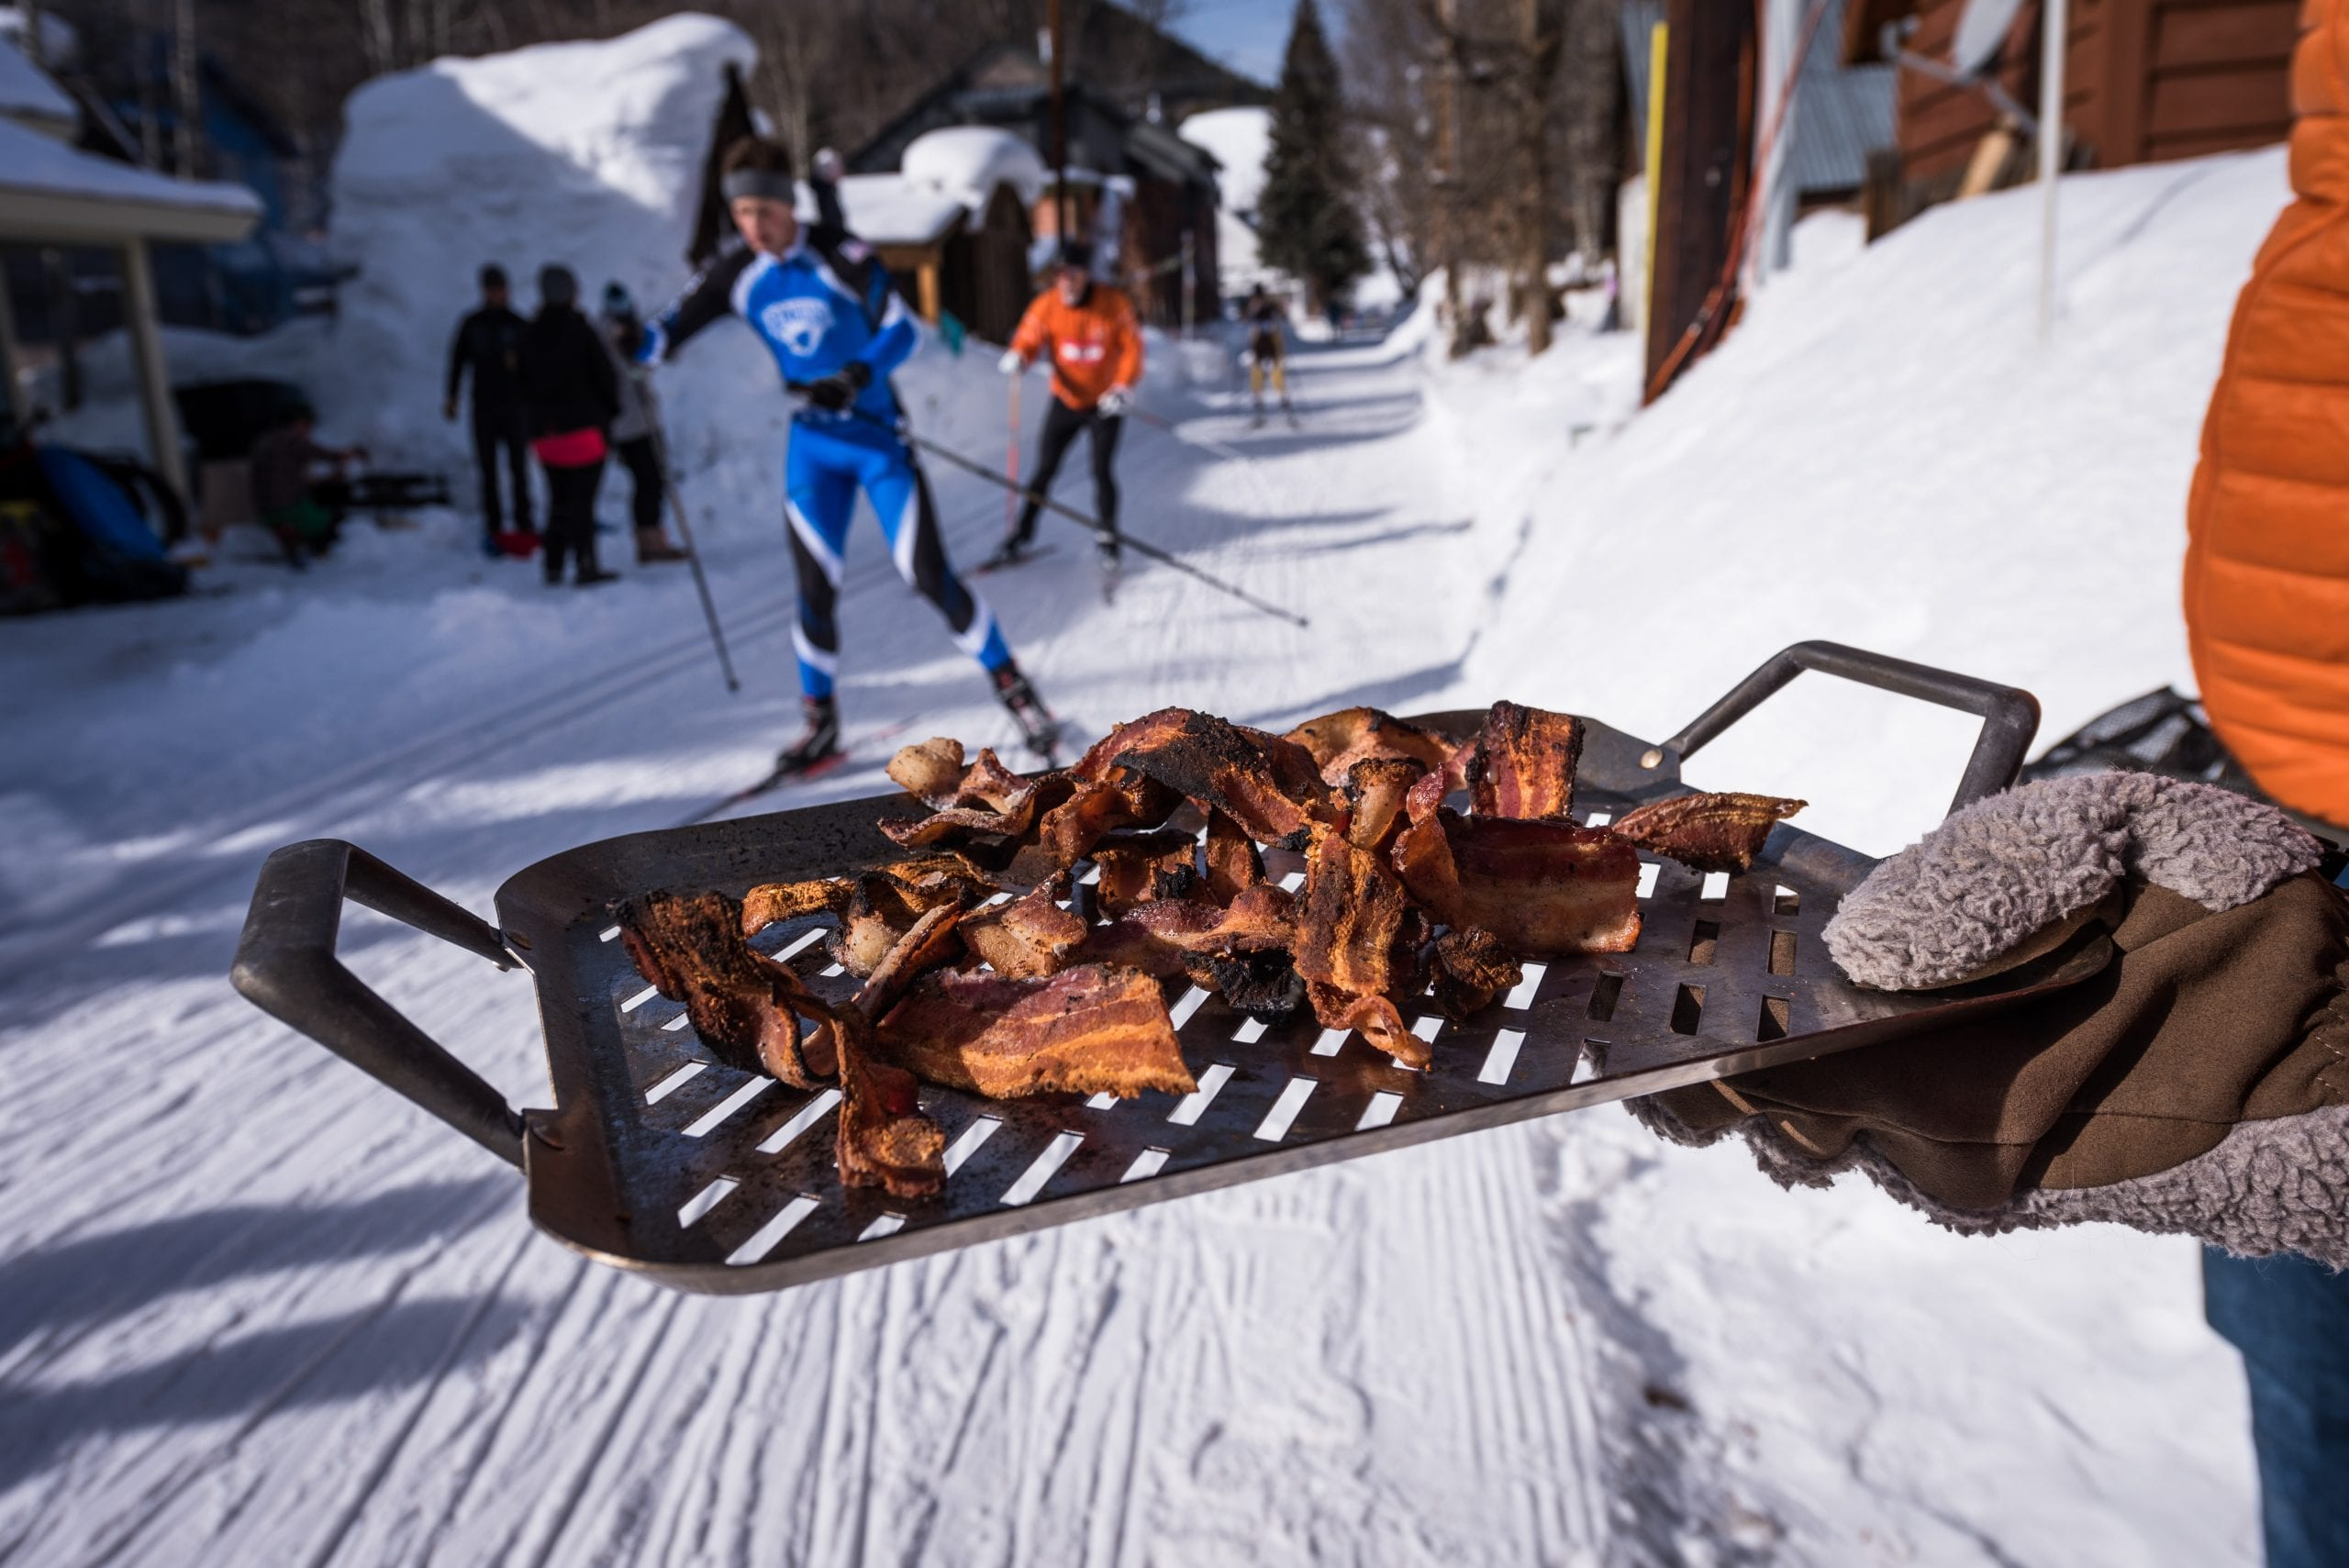 Bacon handouts for Alley Loop racers on course